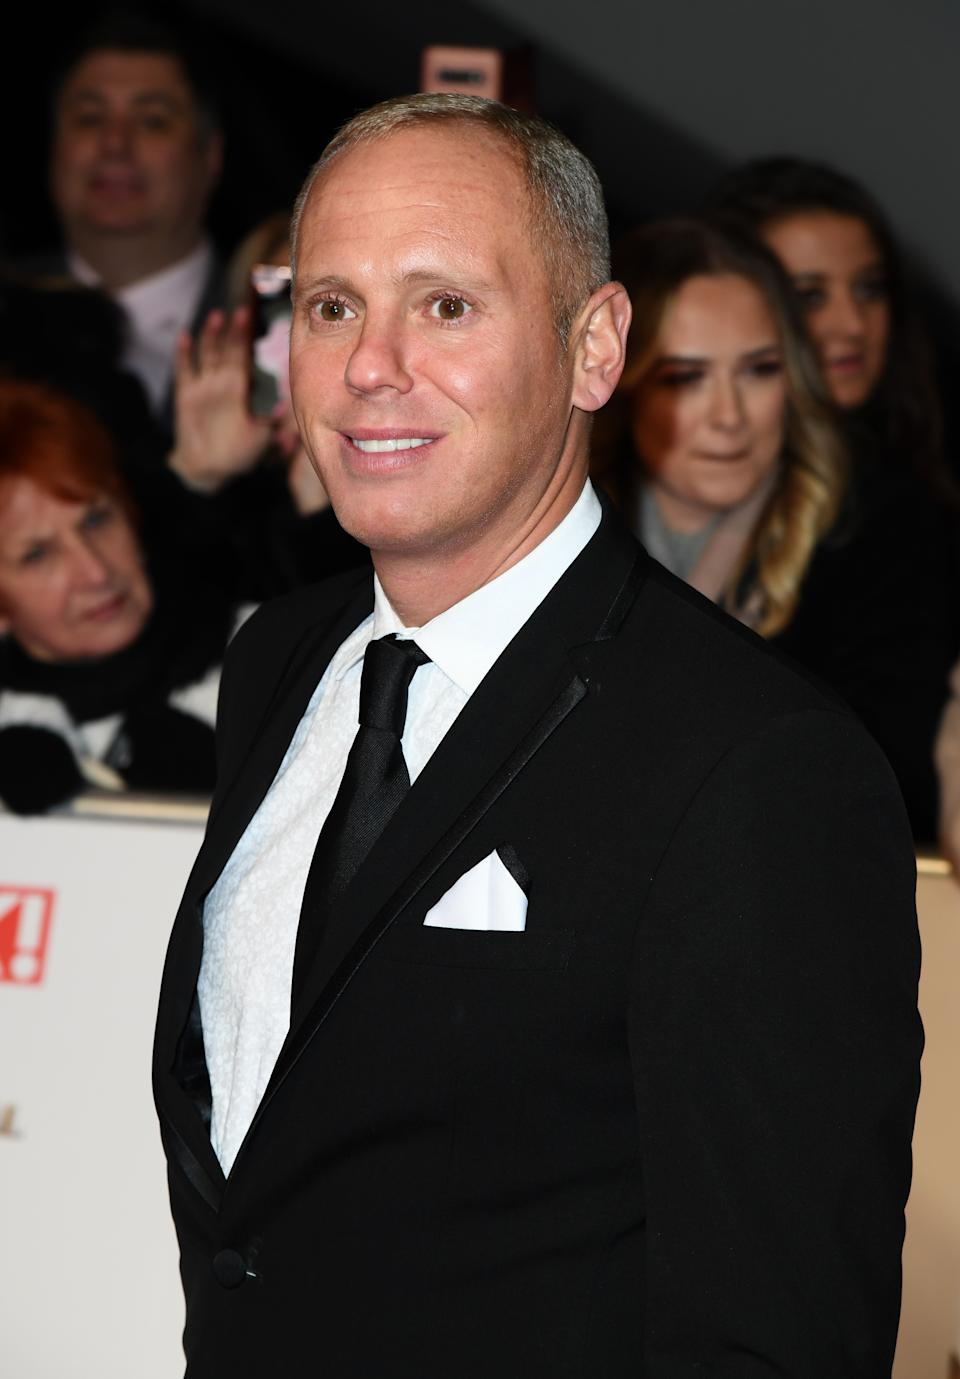 Robert Rinder attends the National Television Awards 2020 at The O2 Arena on January 28, 2020 in London, England. (Photo by Gareth Cattermole/Getty Images)